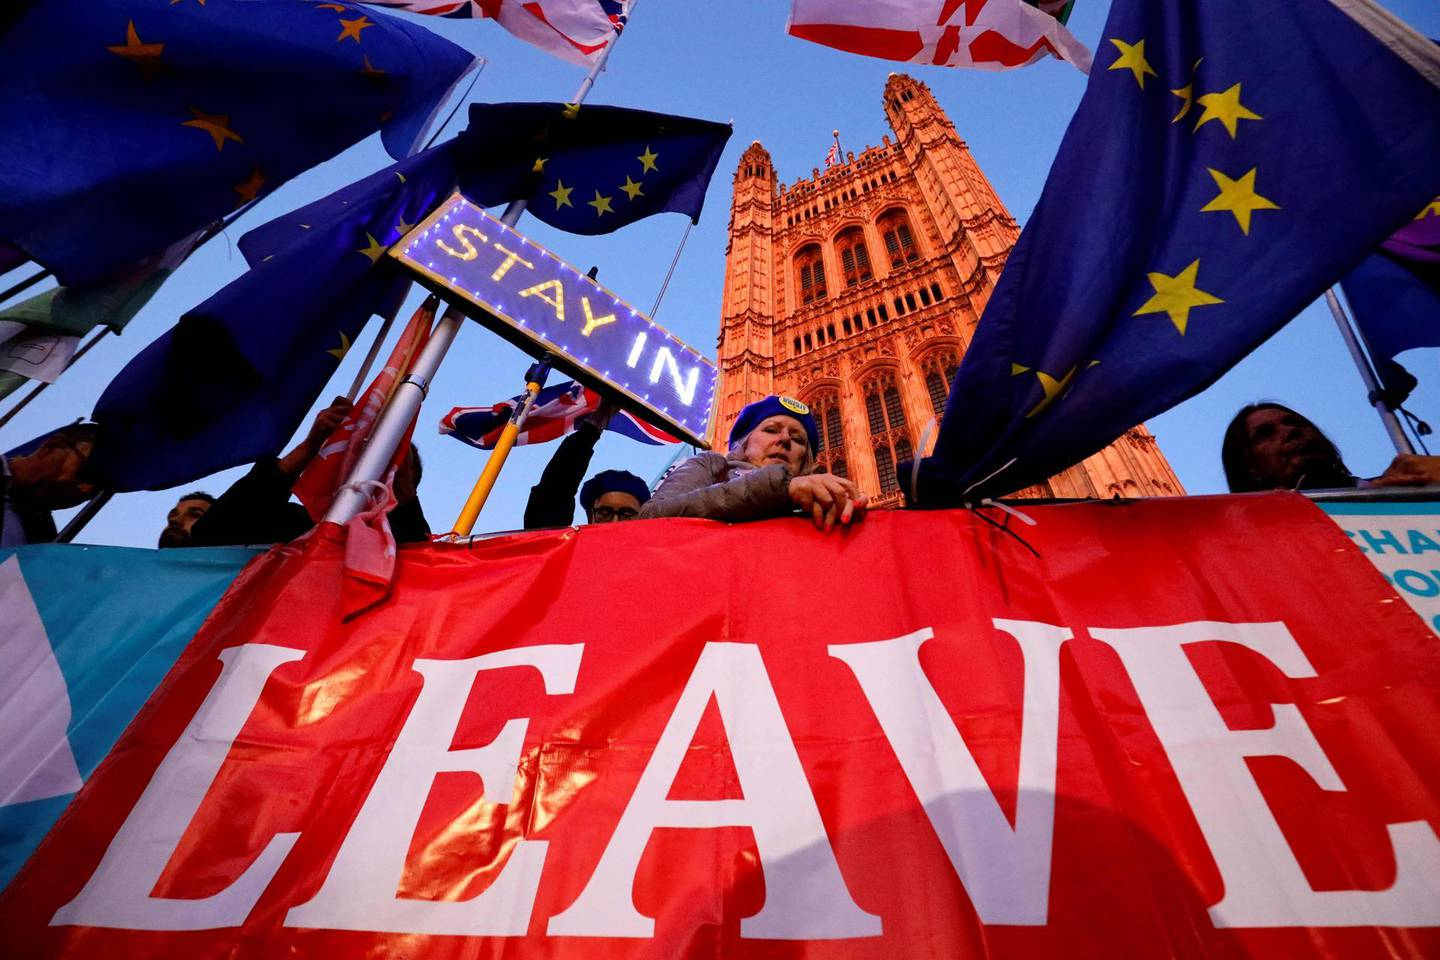 (FILES) In this file photo taken on October 22, 2019 Banners, Union and EU flags are displayed outside the Houses of Parliament in London on October 22, 2019, as MPs debate the second reading of the Government's European Union (Withdrawal Agreement) Bill.  The UK and European Union will on December 30 sign a mammoth trade pact to put the seal on their drawn-out Brexit divorce in the dwindling hours before they part ways definitively at the dawning of 2021. / AFP / Tolga Akmen / TO GO WITH STORY BY JITENDRA JOSHI